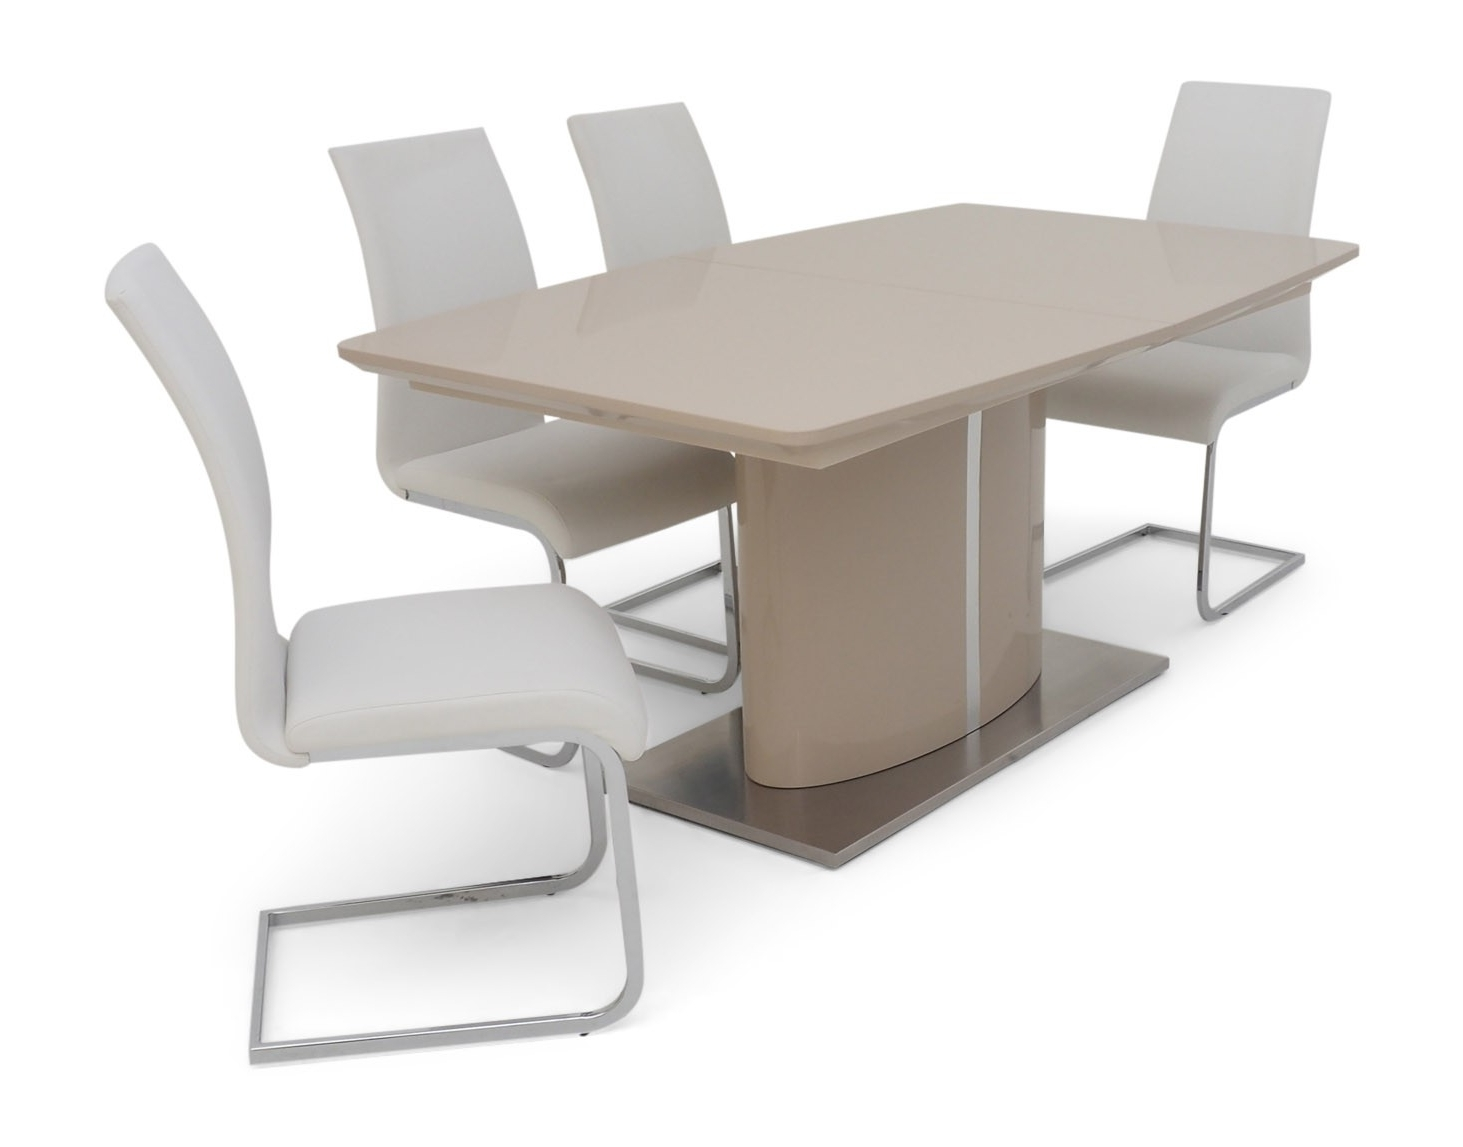 Extending Cream Gloss Dining Table + 6 Chairs Set Intended For Favorite Cream Gloss Dining Tables And Chairs (View 8 of 25)